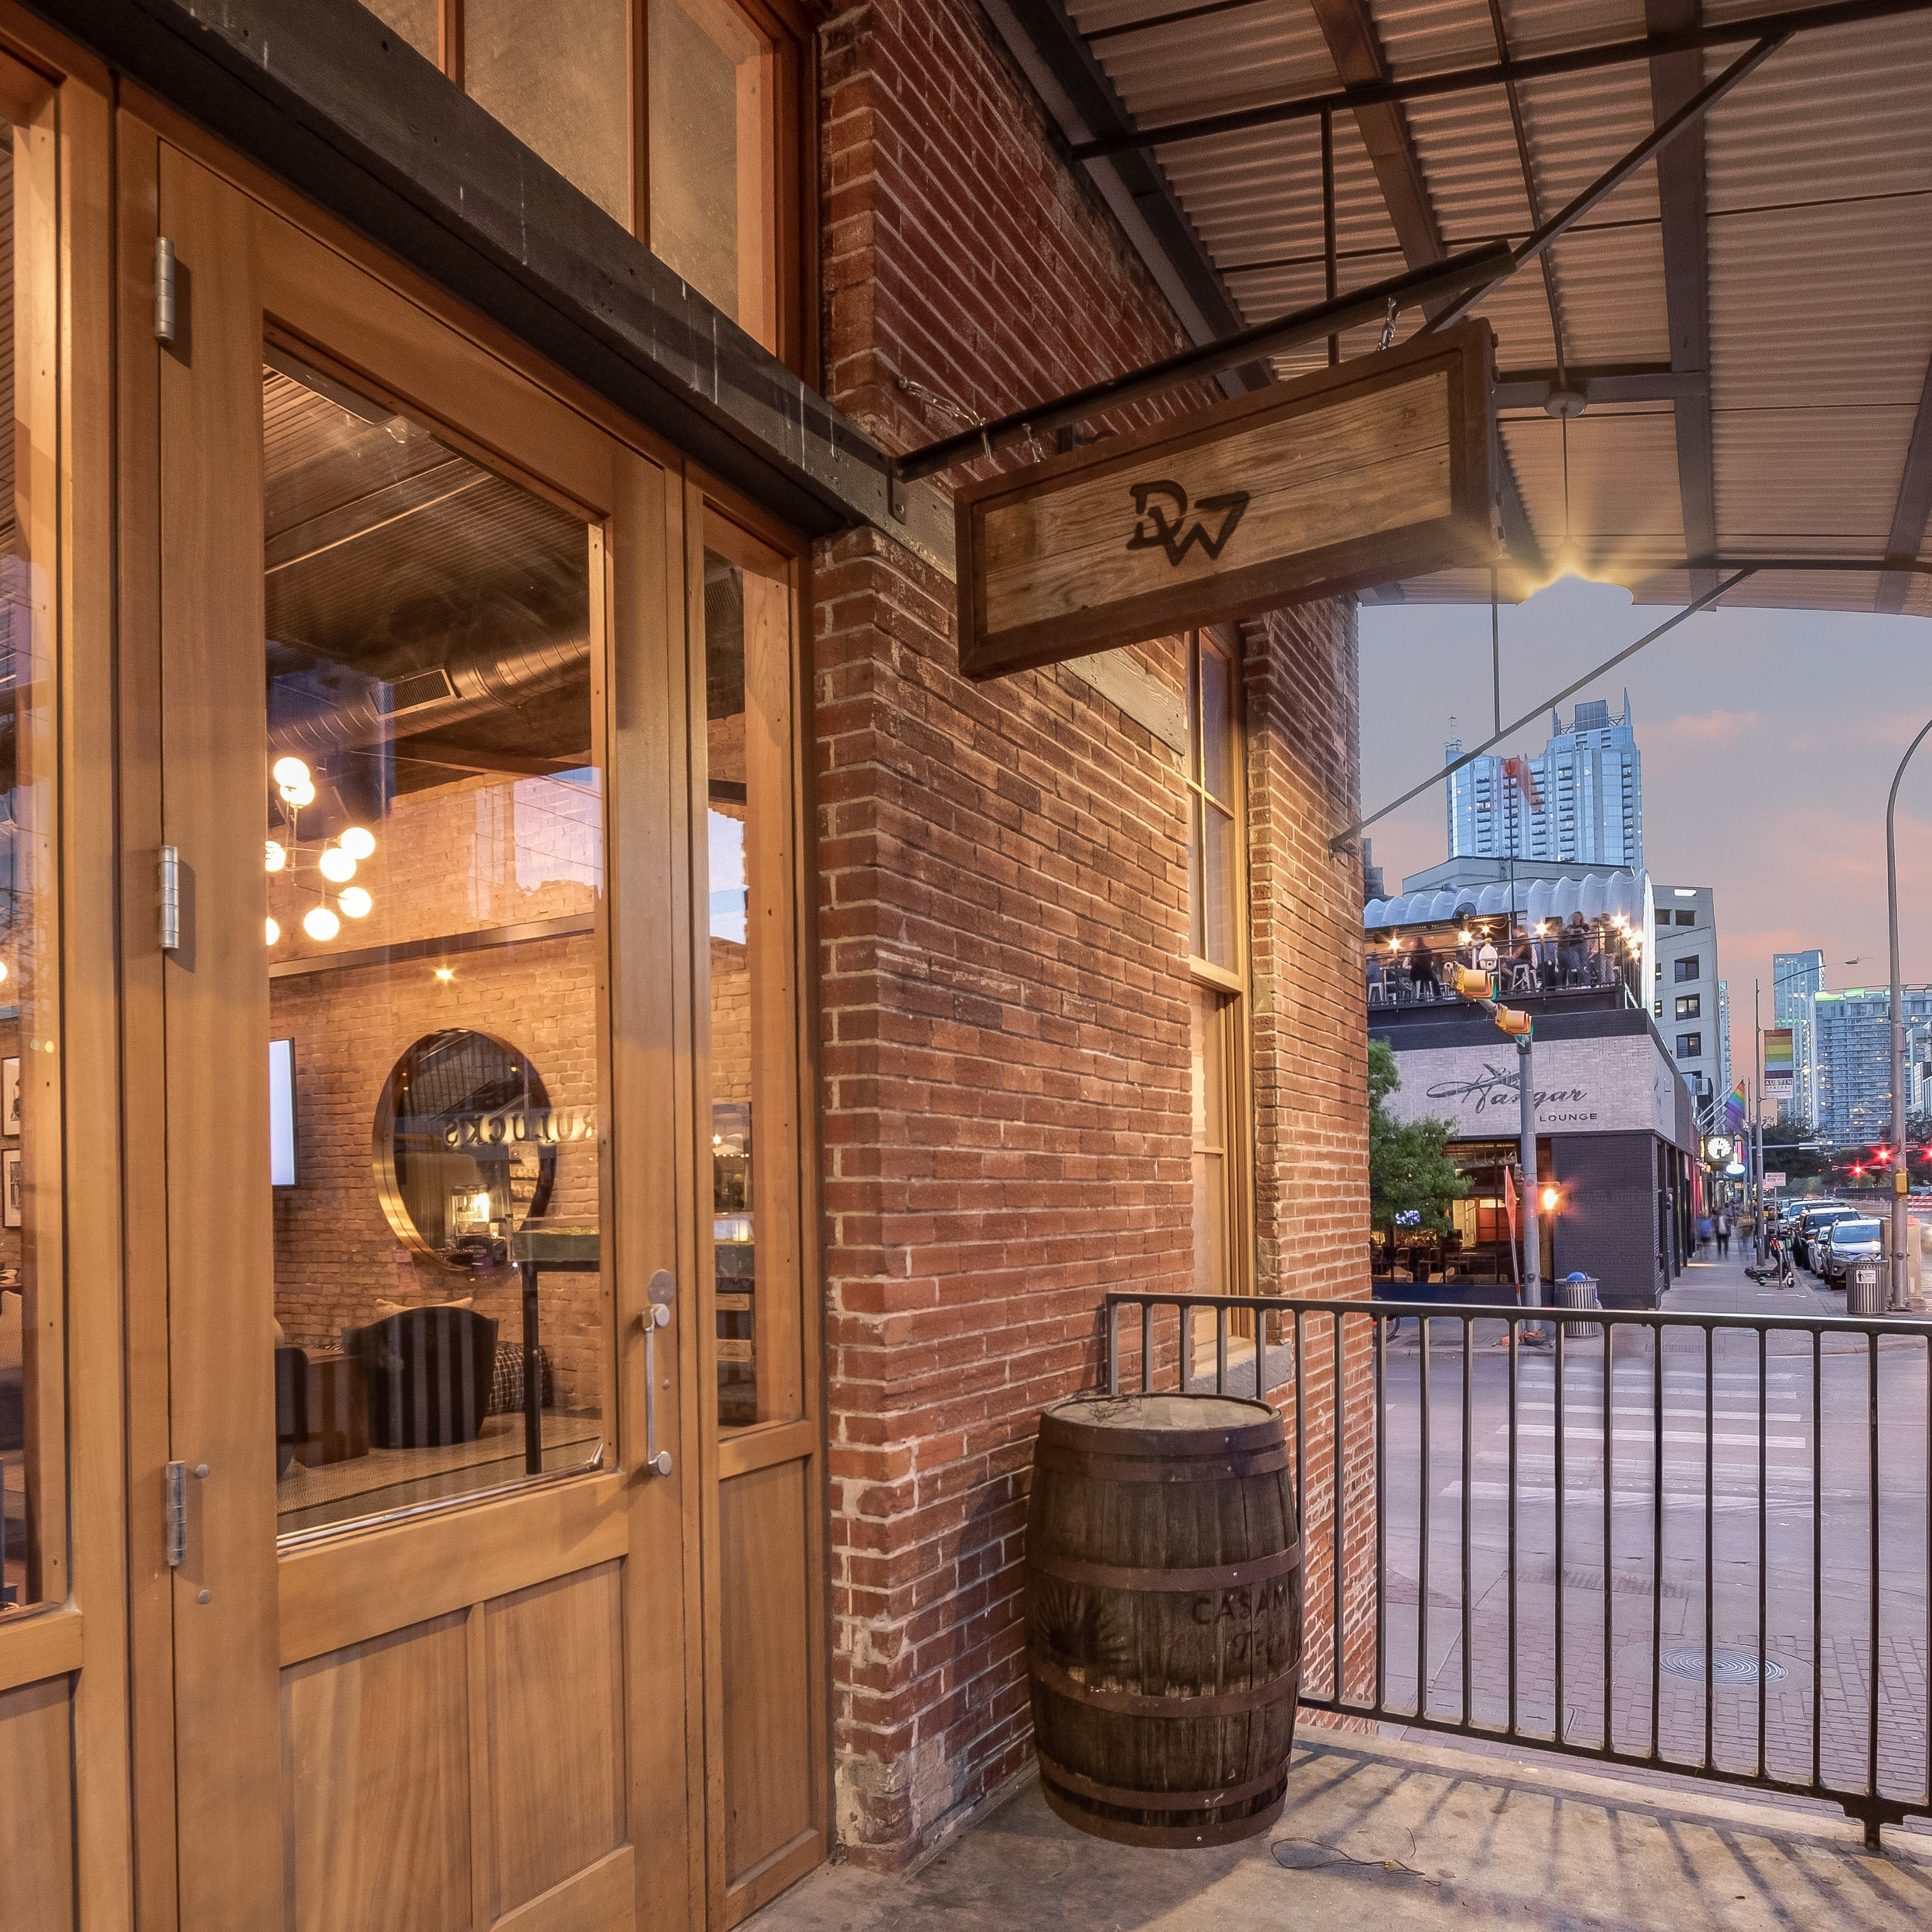 Driftwood Downtown Club Access - Members will have access to the main level, tap room, and rooftop (weather permitting) during regular operating hours, exclusive of private events. Each space includes a fully stocked bar, multiple TV screens, lounge areas, Wi-Fi, and sound system.